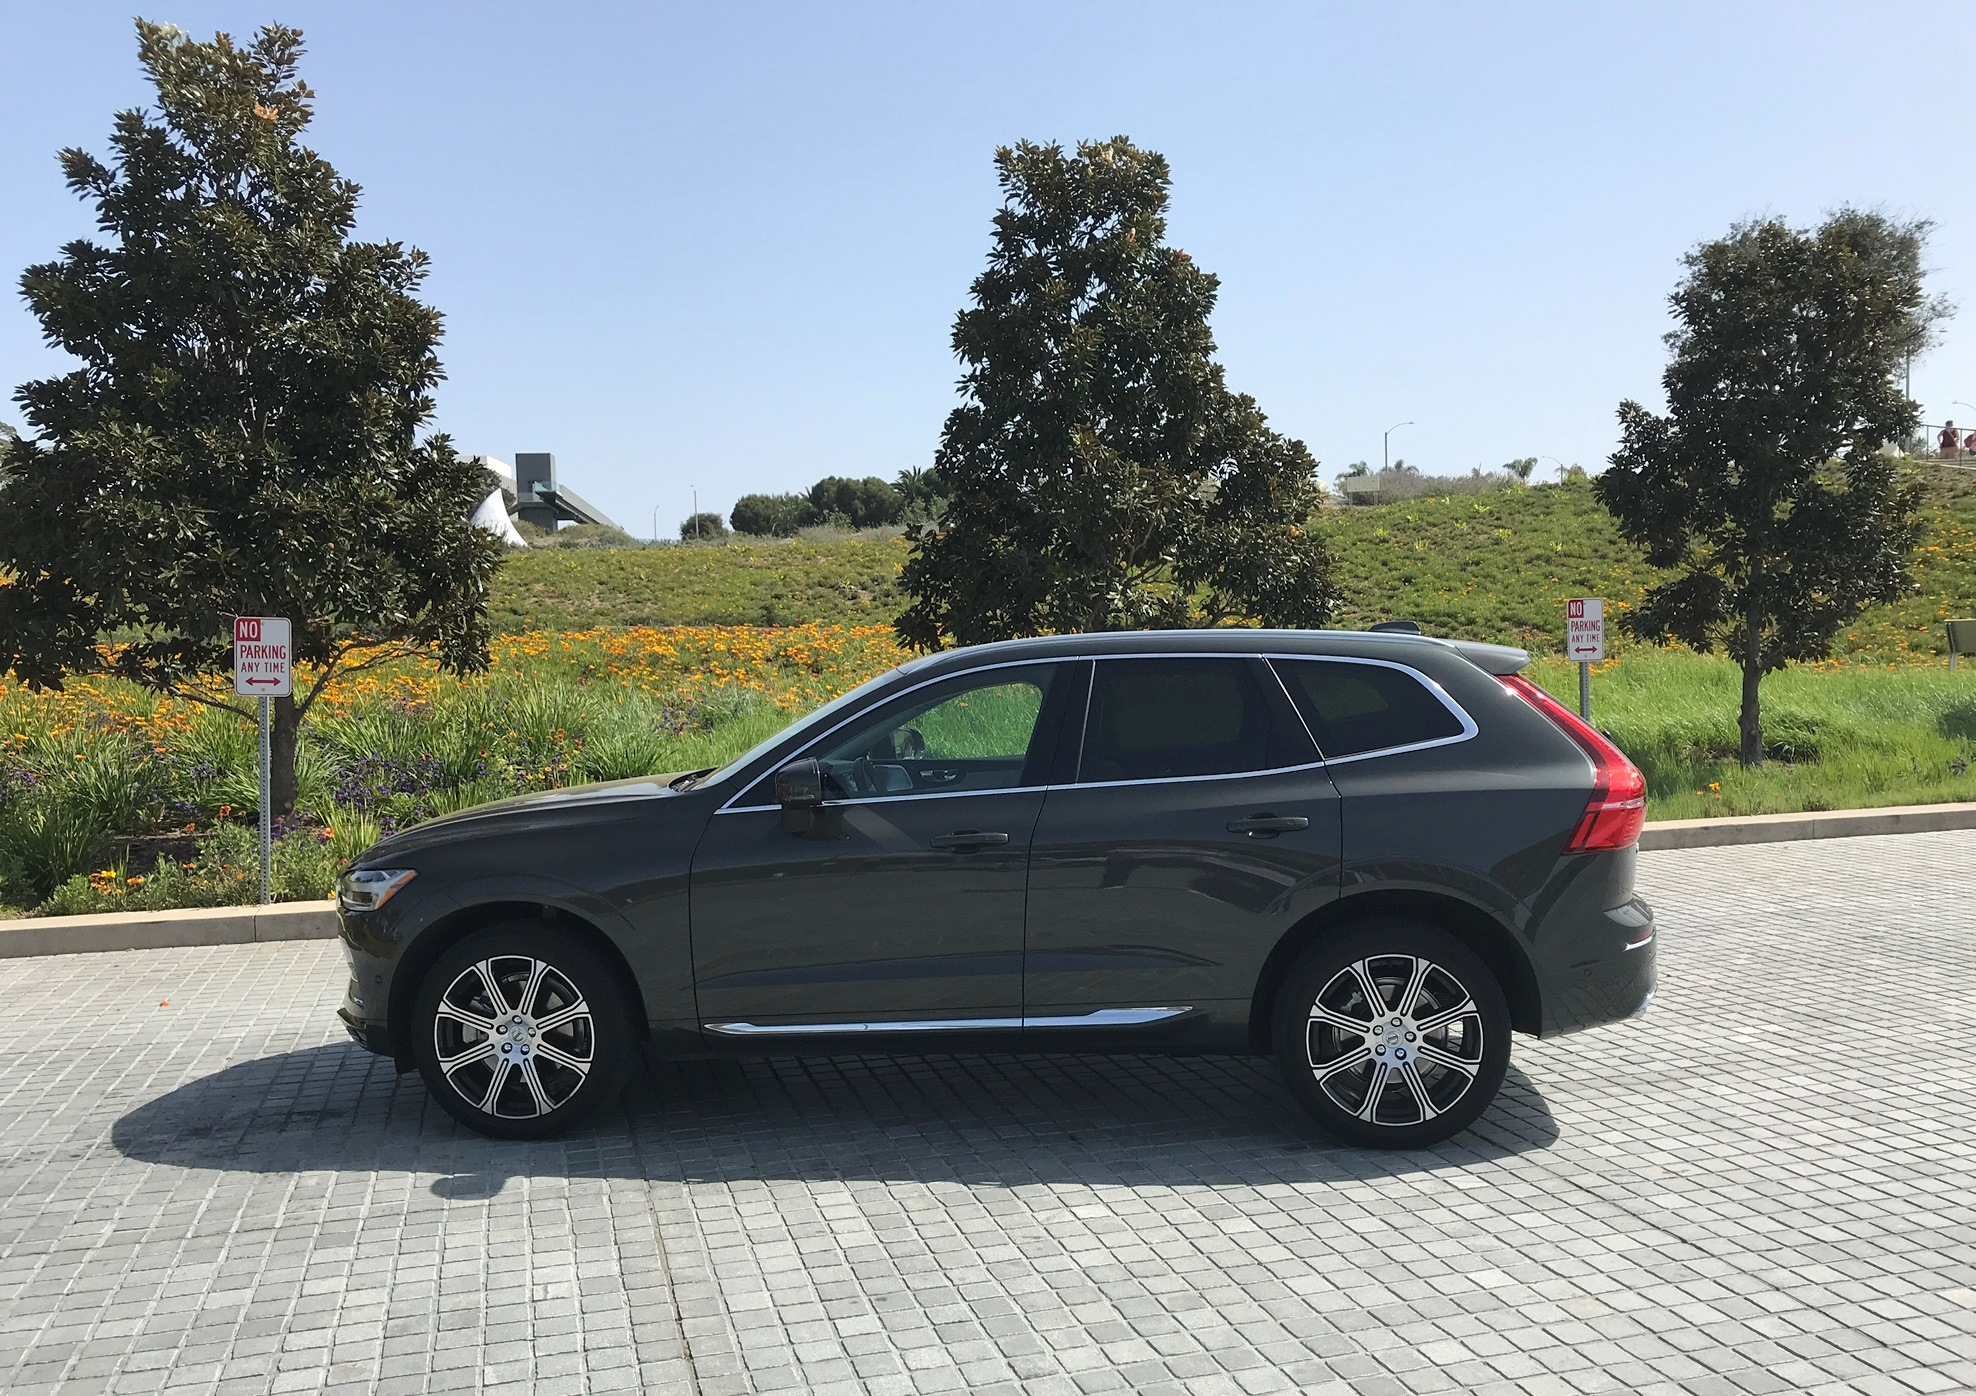 2018 Volvo Xc60 T6 Awd Inscription Lives Up To Lofty Expectations Oc Weekly